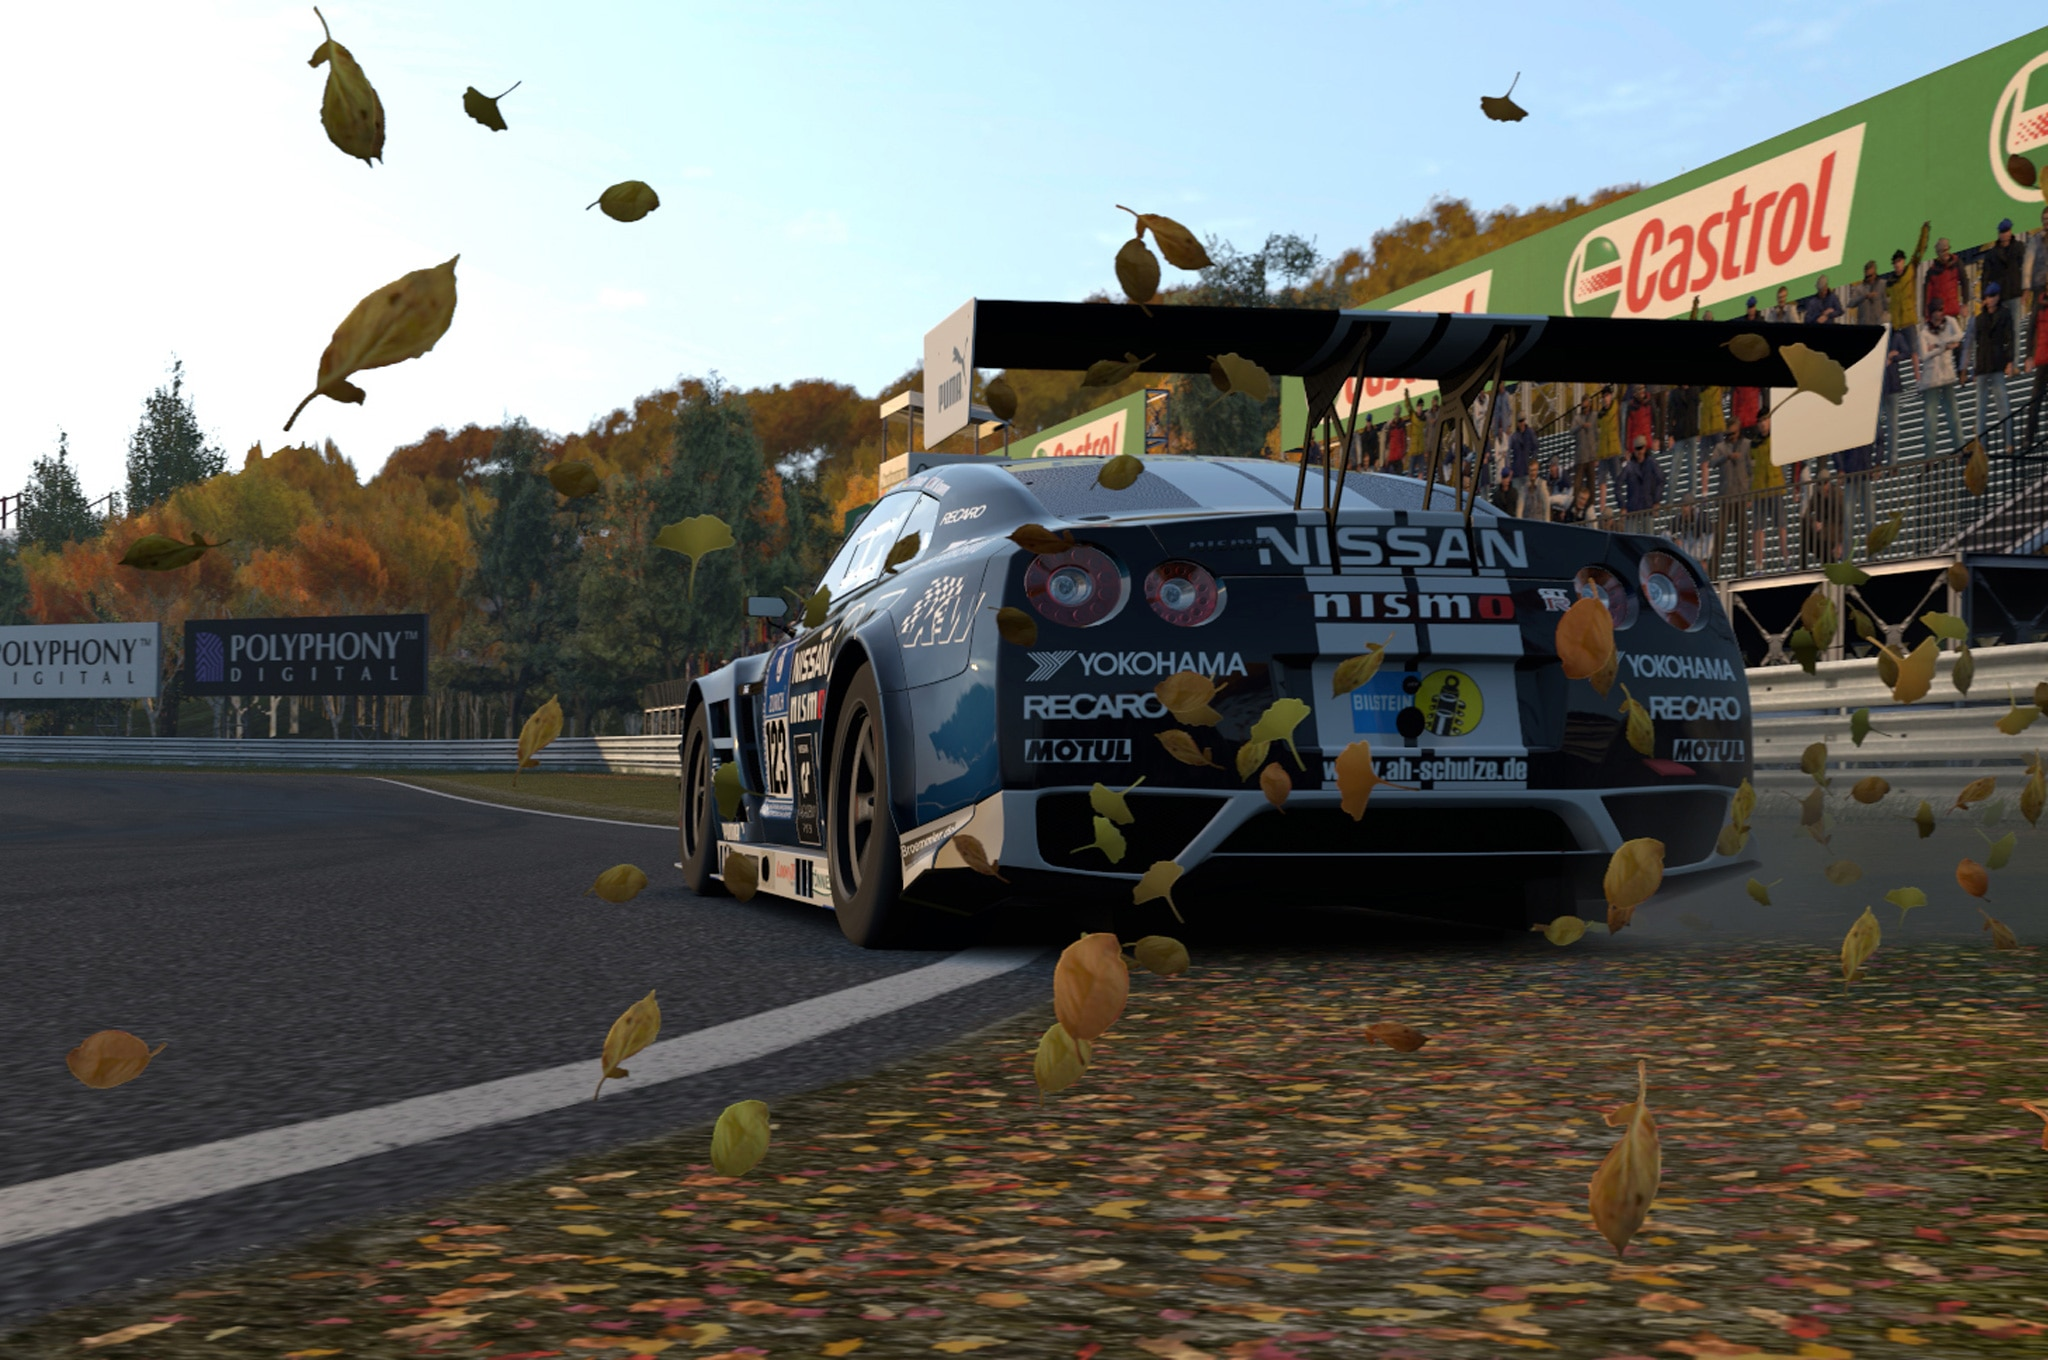 Gran Turismo 6 Screen Shot Nissan GT R Race Car In Leaves